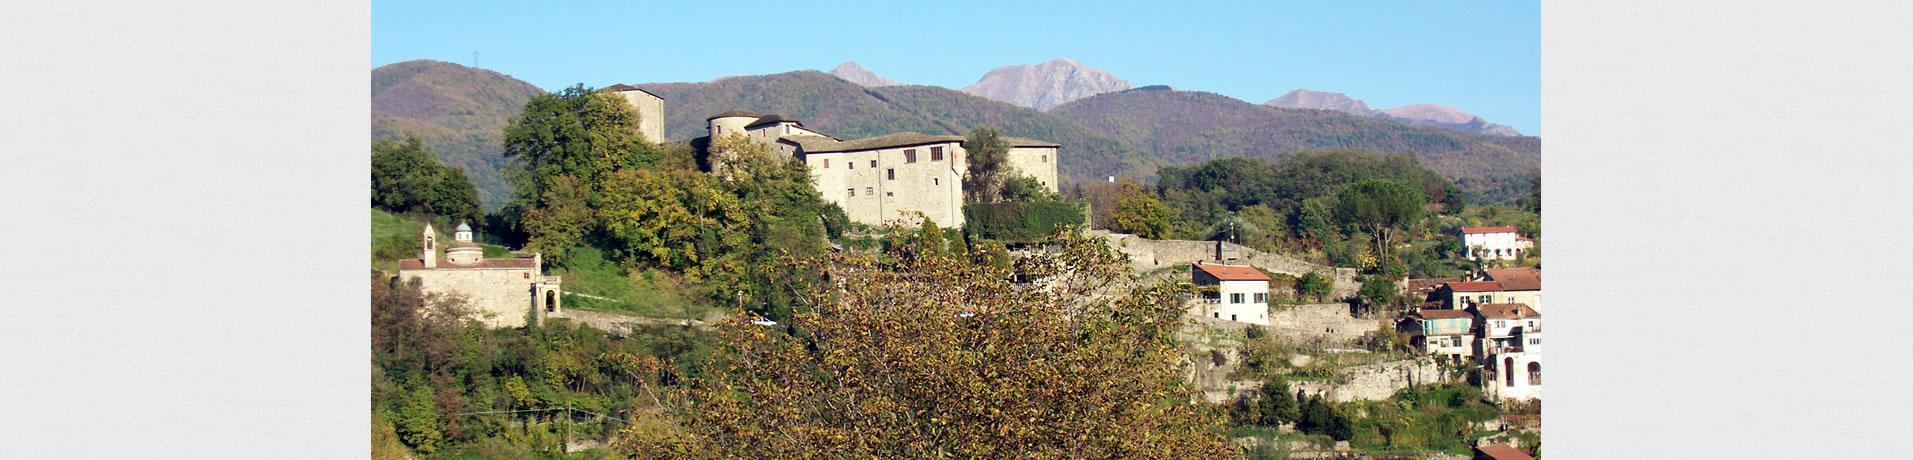 home_bb_castello_piagnaro